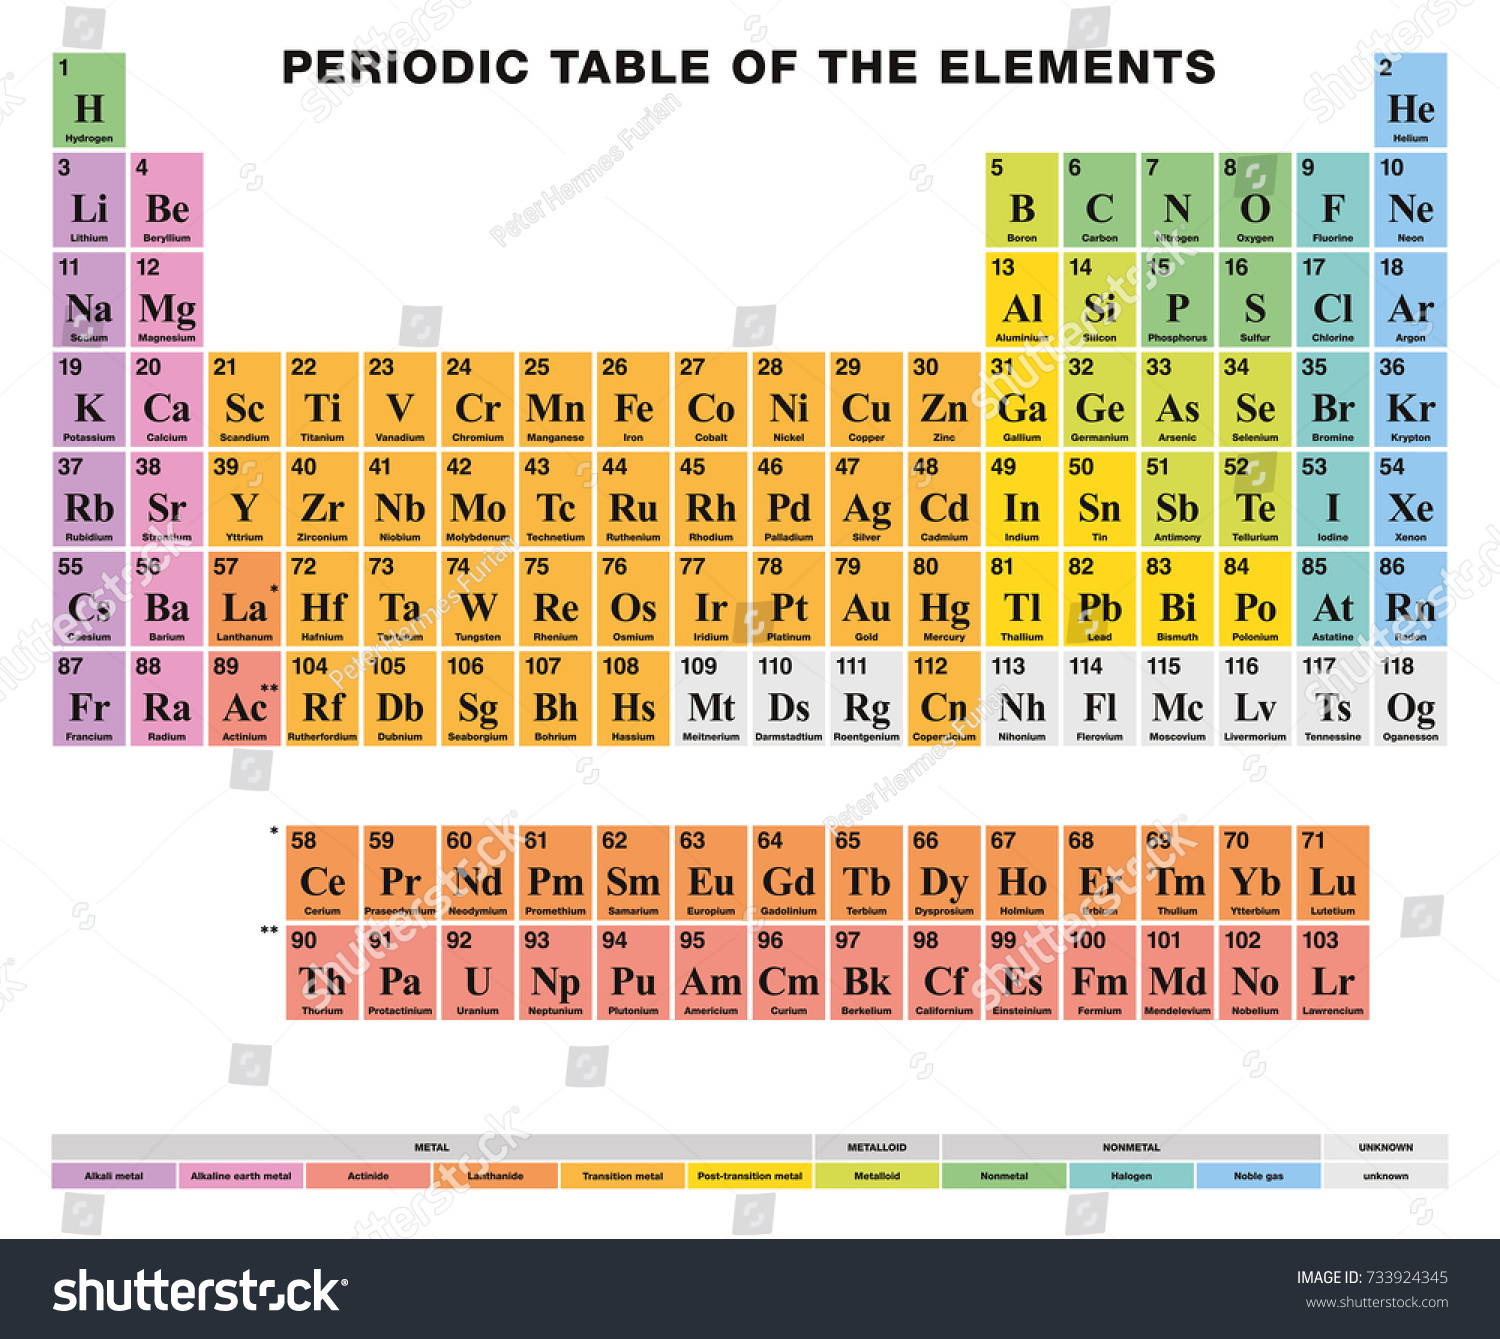 A labeled periodic table images periodic table images periodic table elements english labeling tabular stock vector periodic table of the elements english labeling tabular gamestrikefo Choice Image